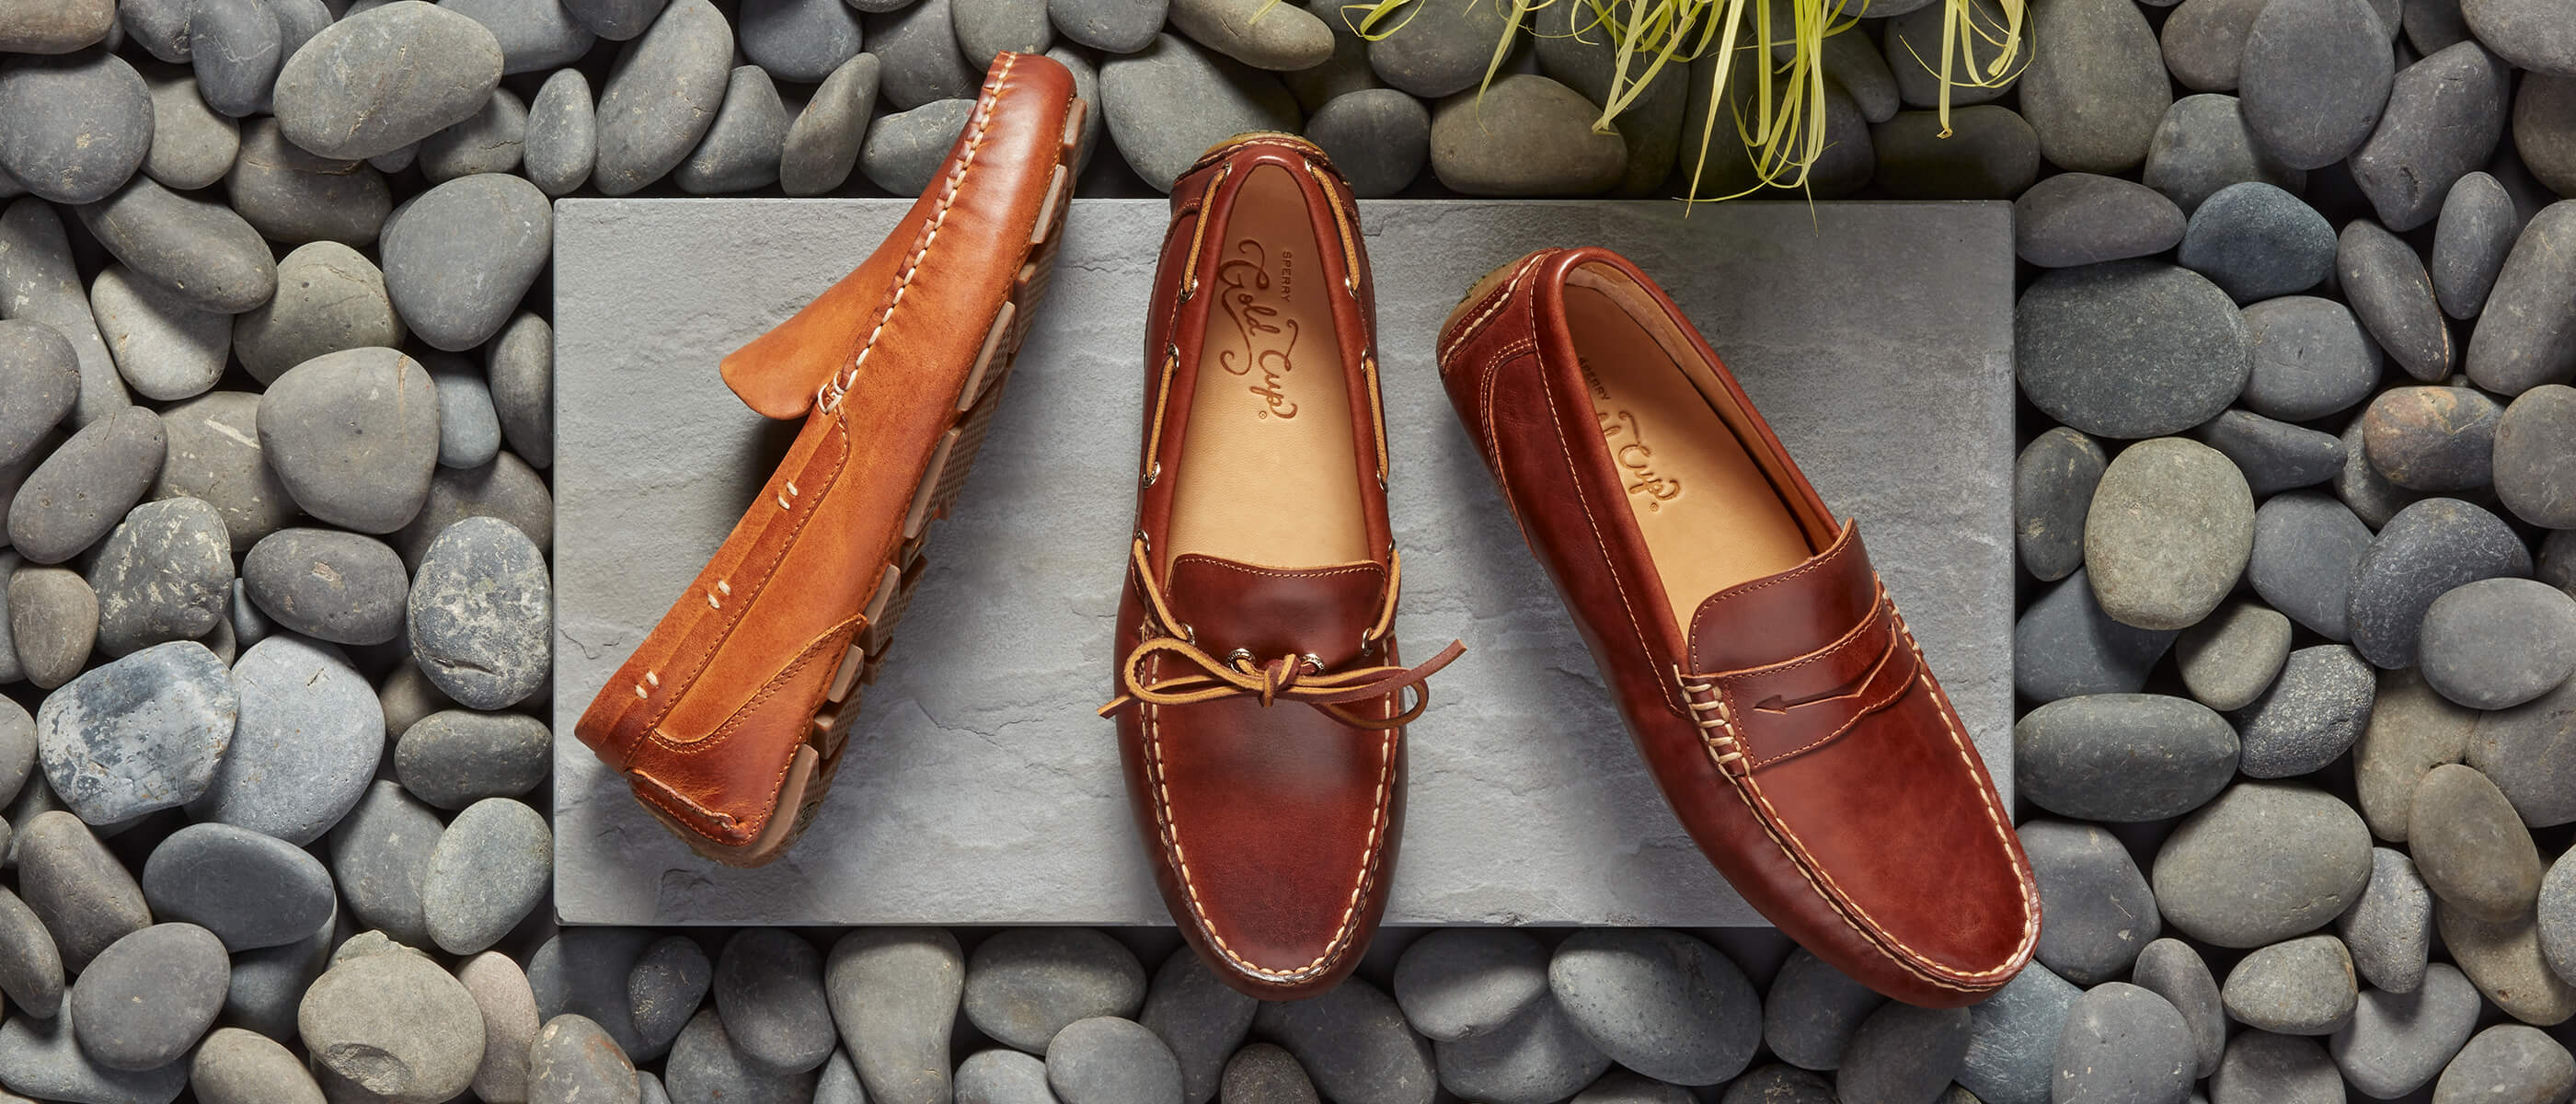 Three styles of Gold Cup loafers on a concrete slab surrounded by grey river stones and grass.